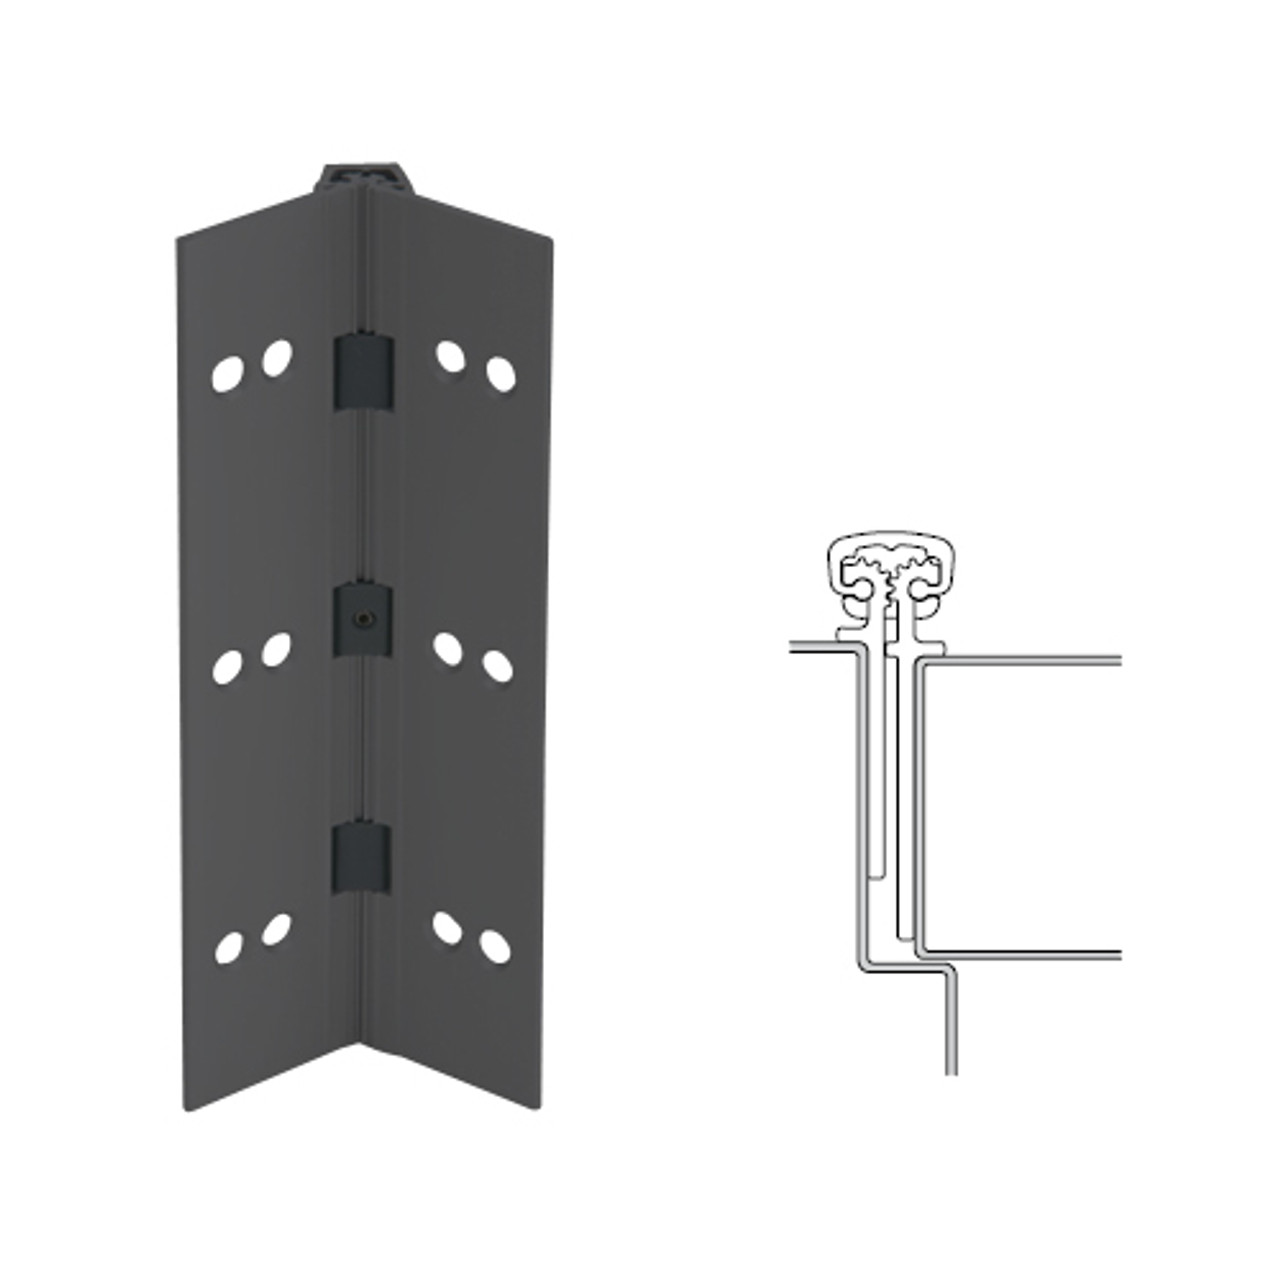 026XY-315AN-120-TF IVES Full Mortise Continuous Geared Hinges with Thread Forming Screws in Anodized Black